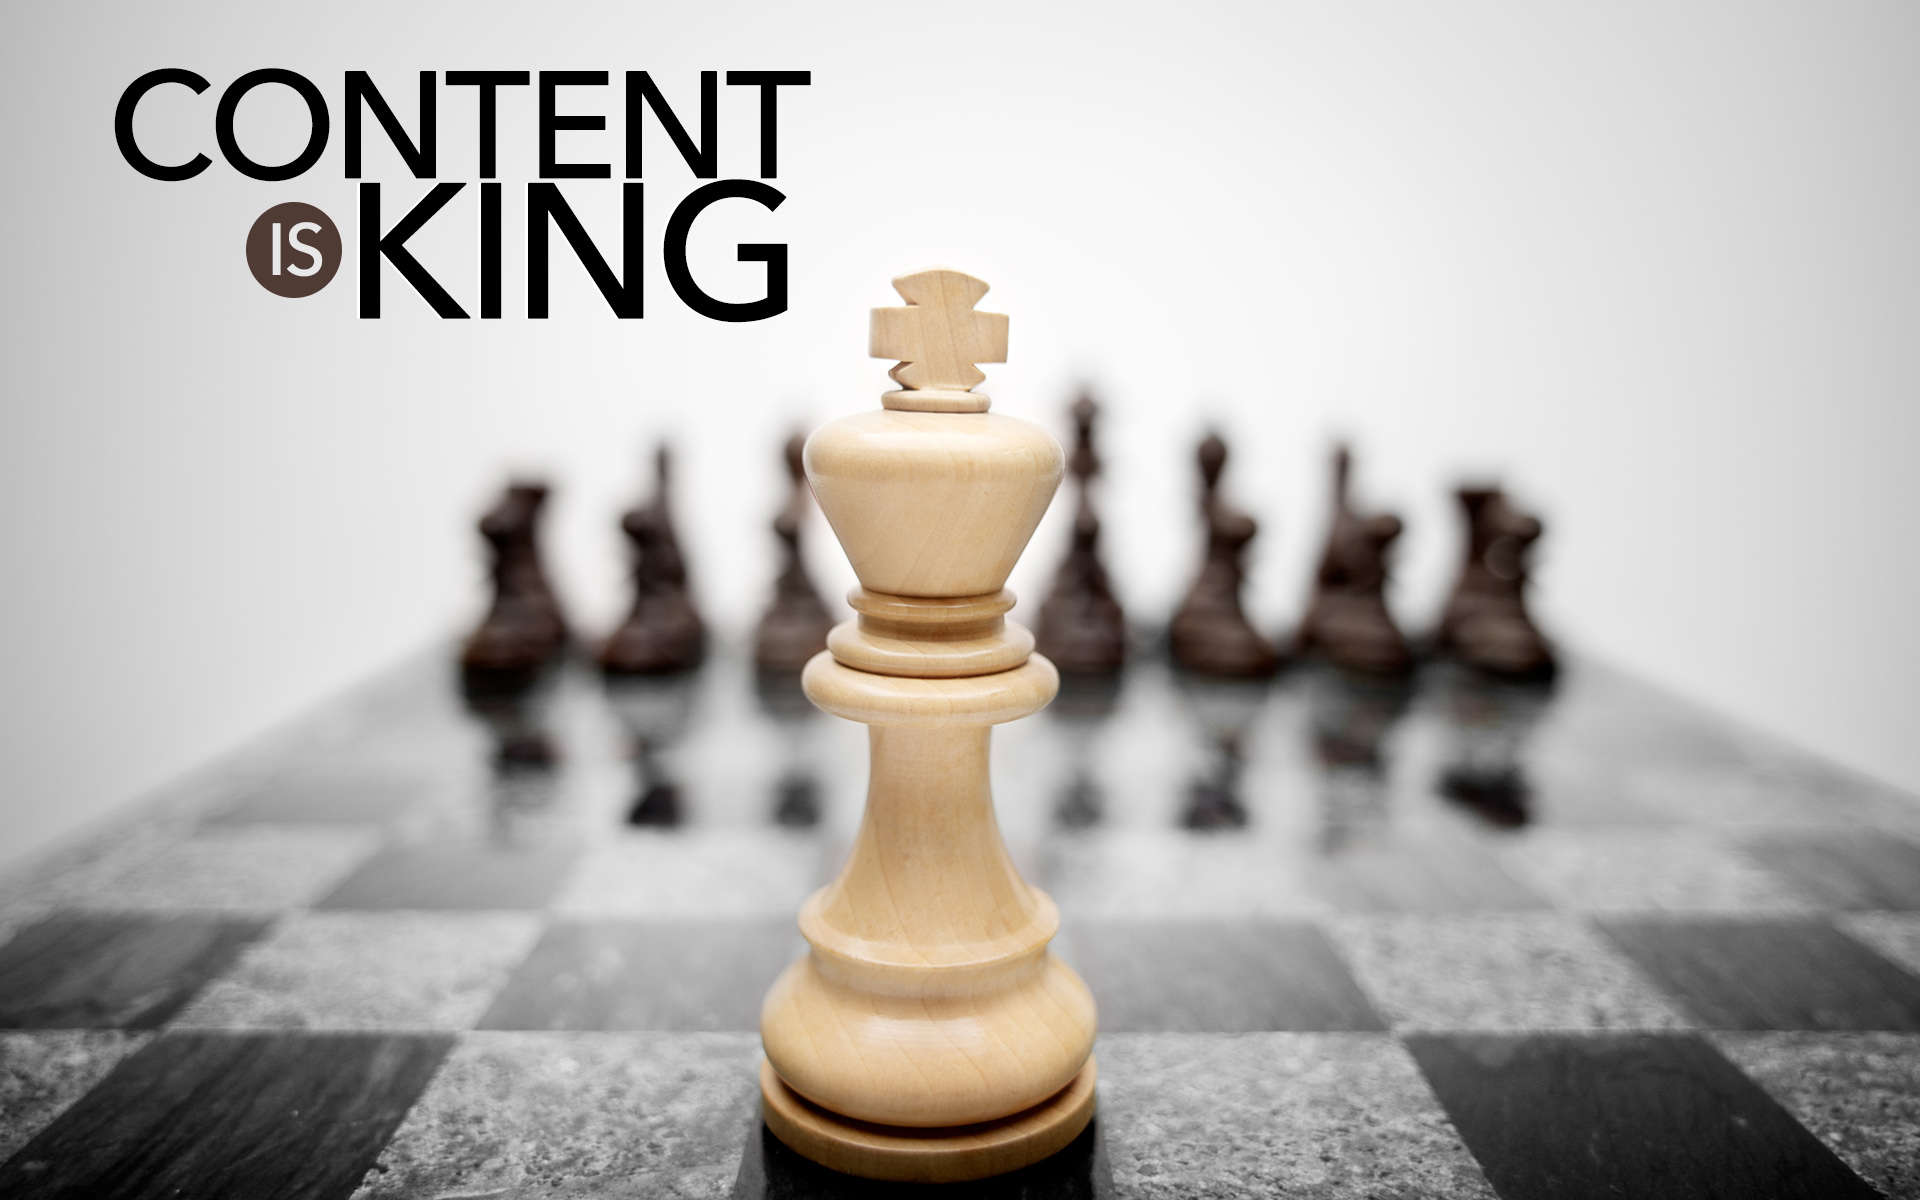 Why content is king in digital marketing?